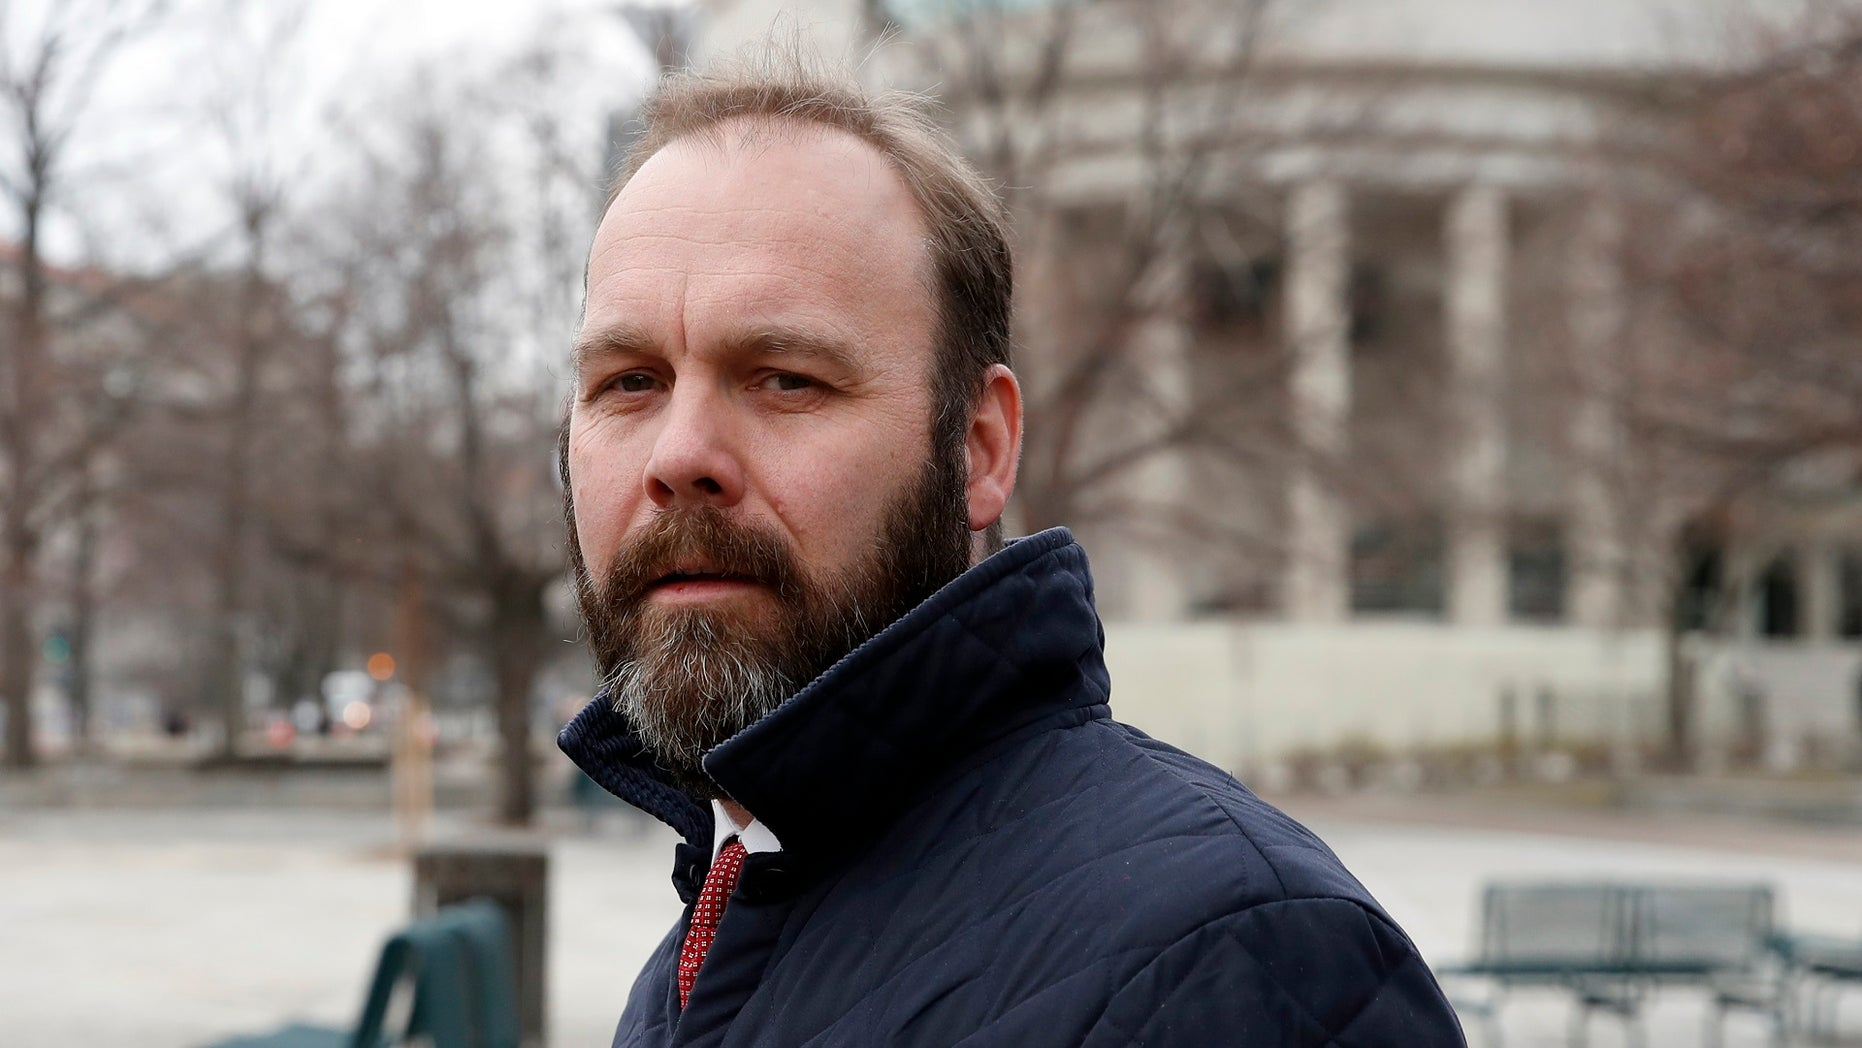 Special Counsel Robert Mueller and lawyers for Rick Gates agreed to delay the former Manafort associate's sentencing date for the second time Tuesday.